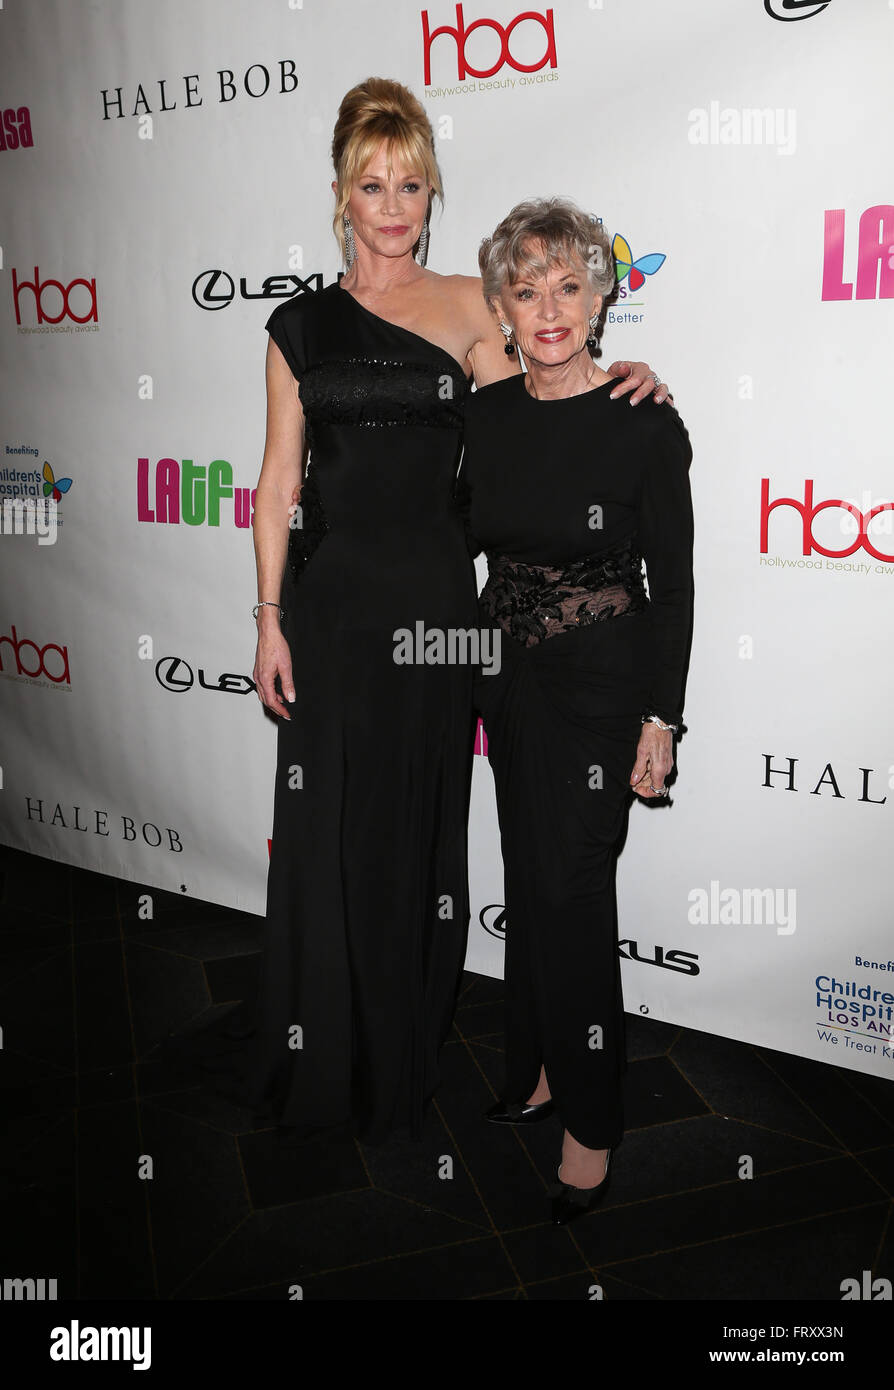 melanie griffith and tippi hedren stockfotos melanie griffith and tippi hedren bilder alamy. Black Bedroom Furniture Sets. Home Design Ideas